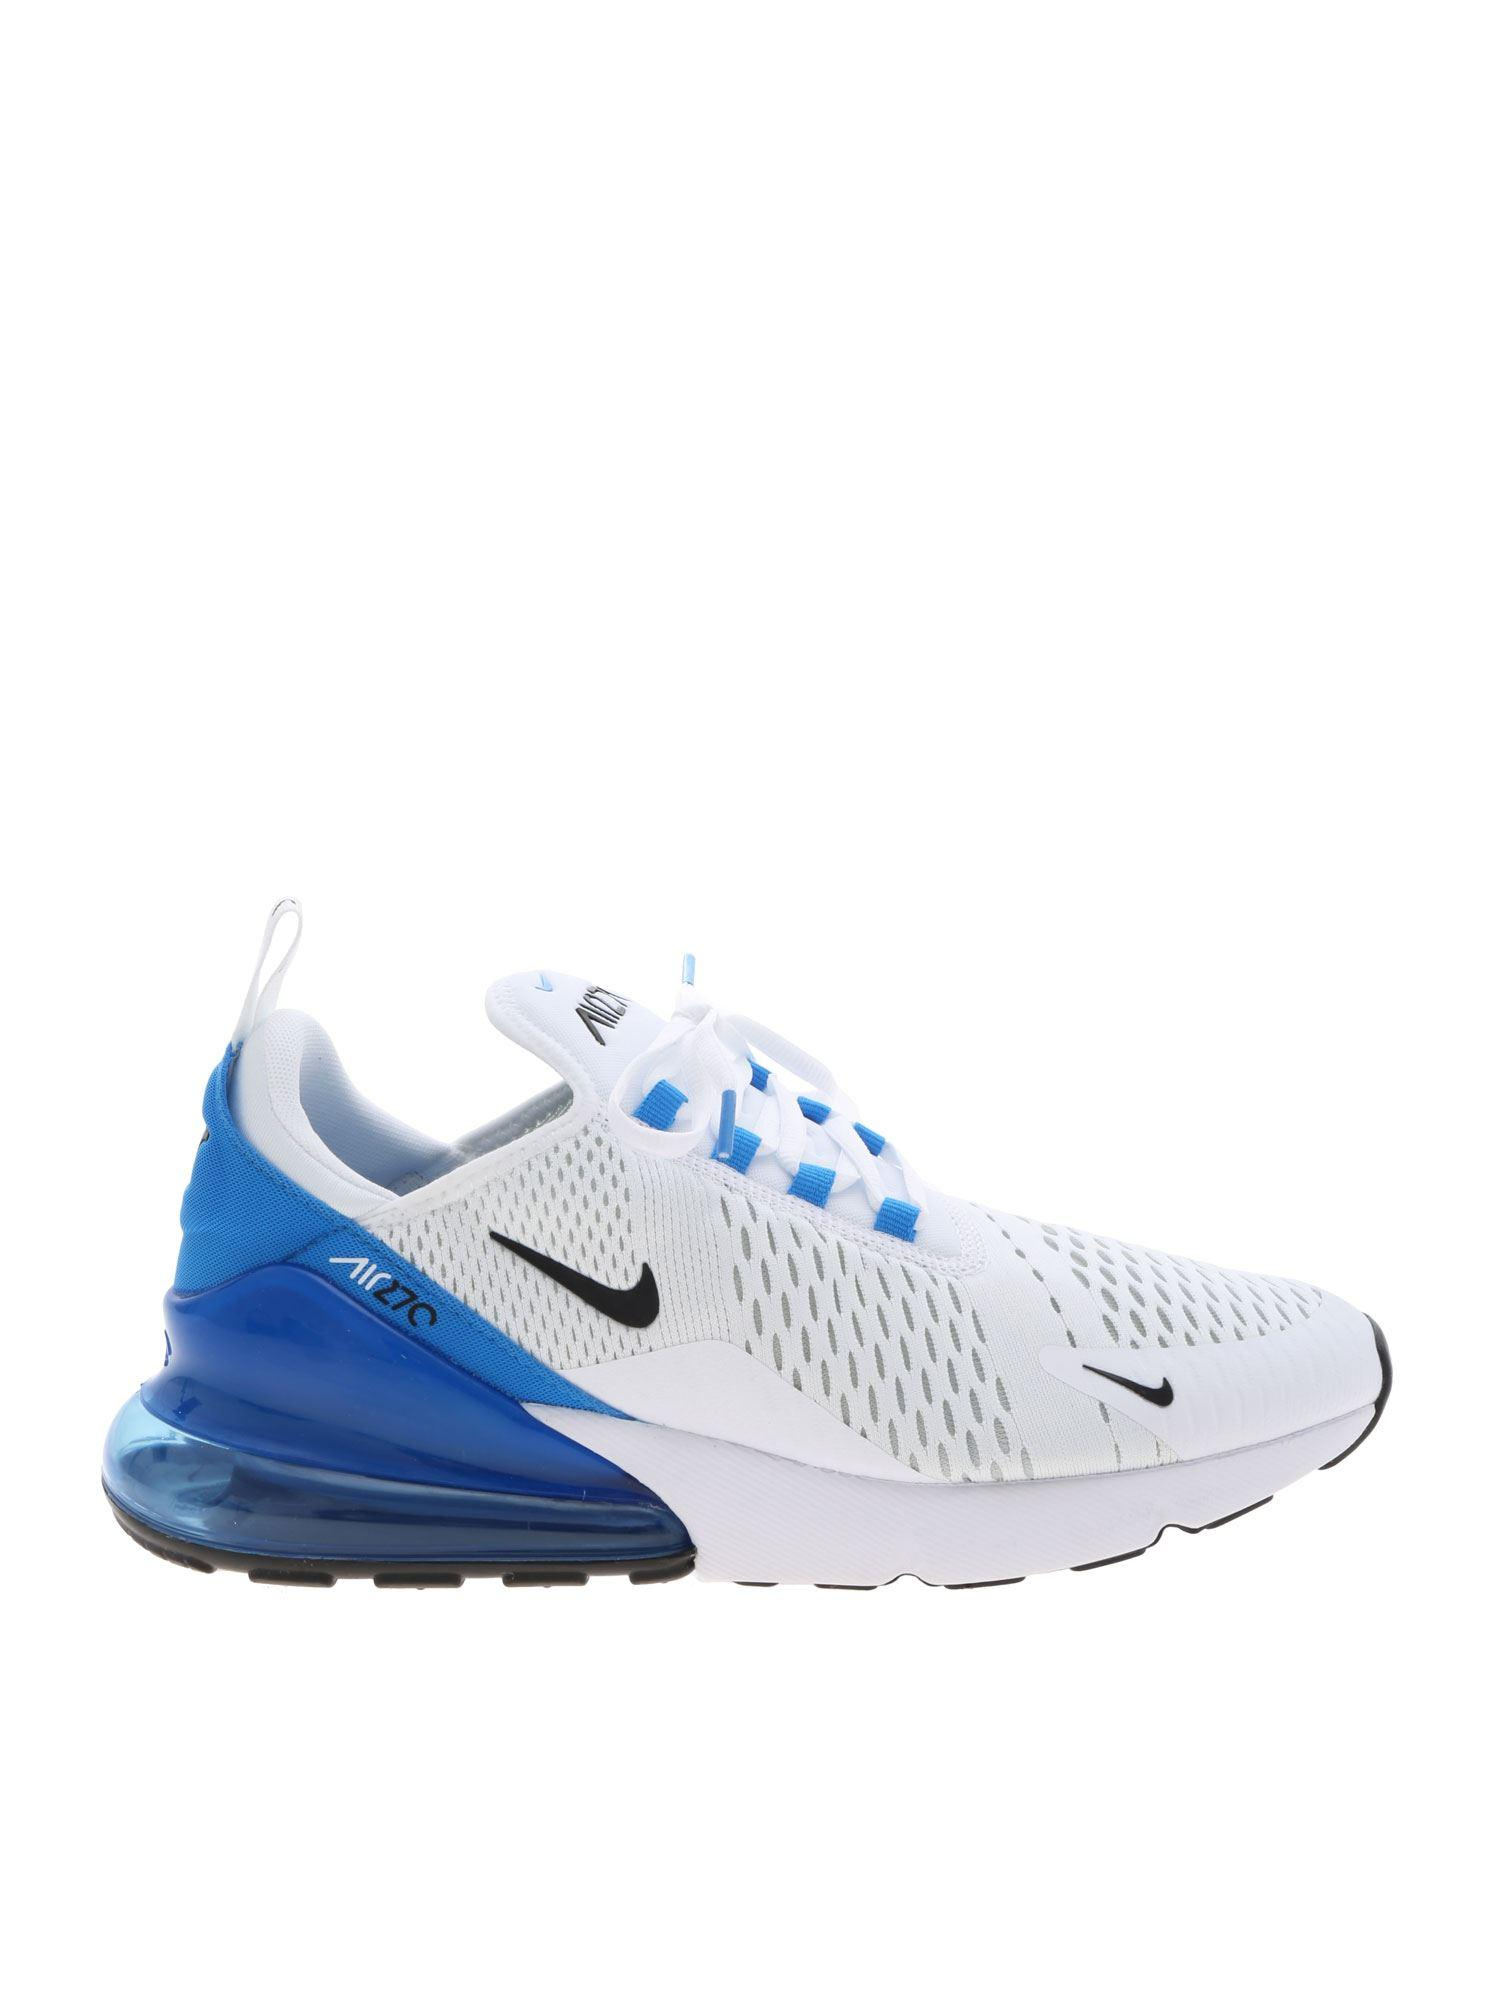 cheap for discount 1686a d7d5d Nike. Men s Air Max 270 Sneakers In White And Blue